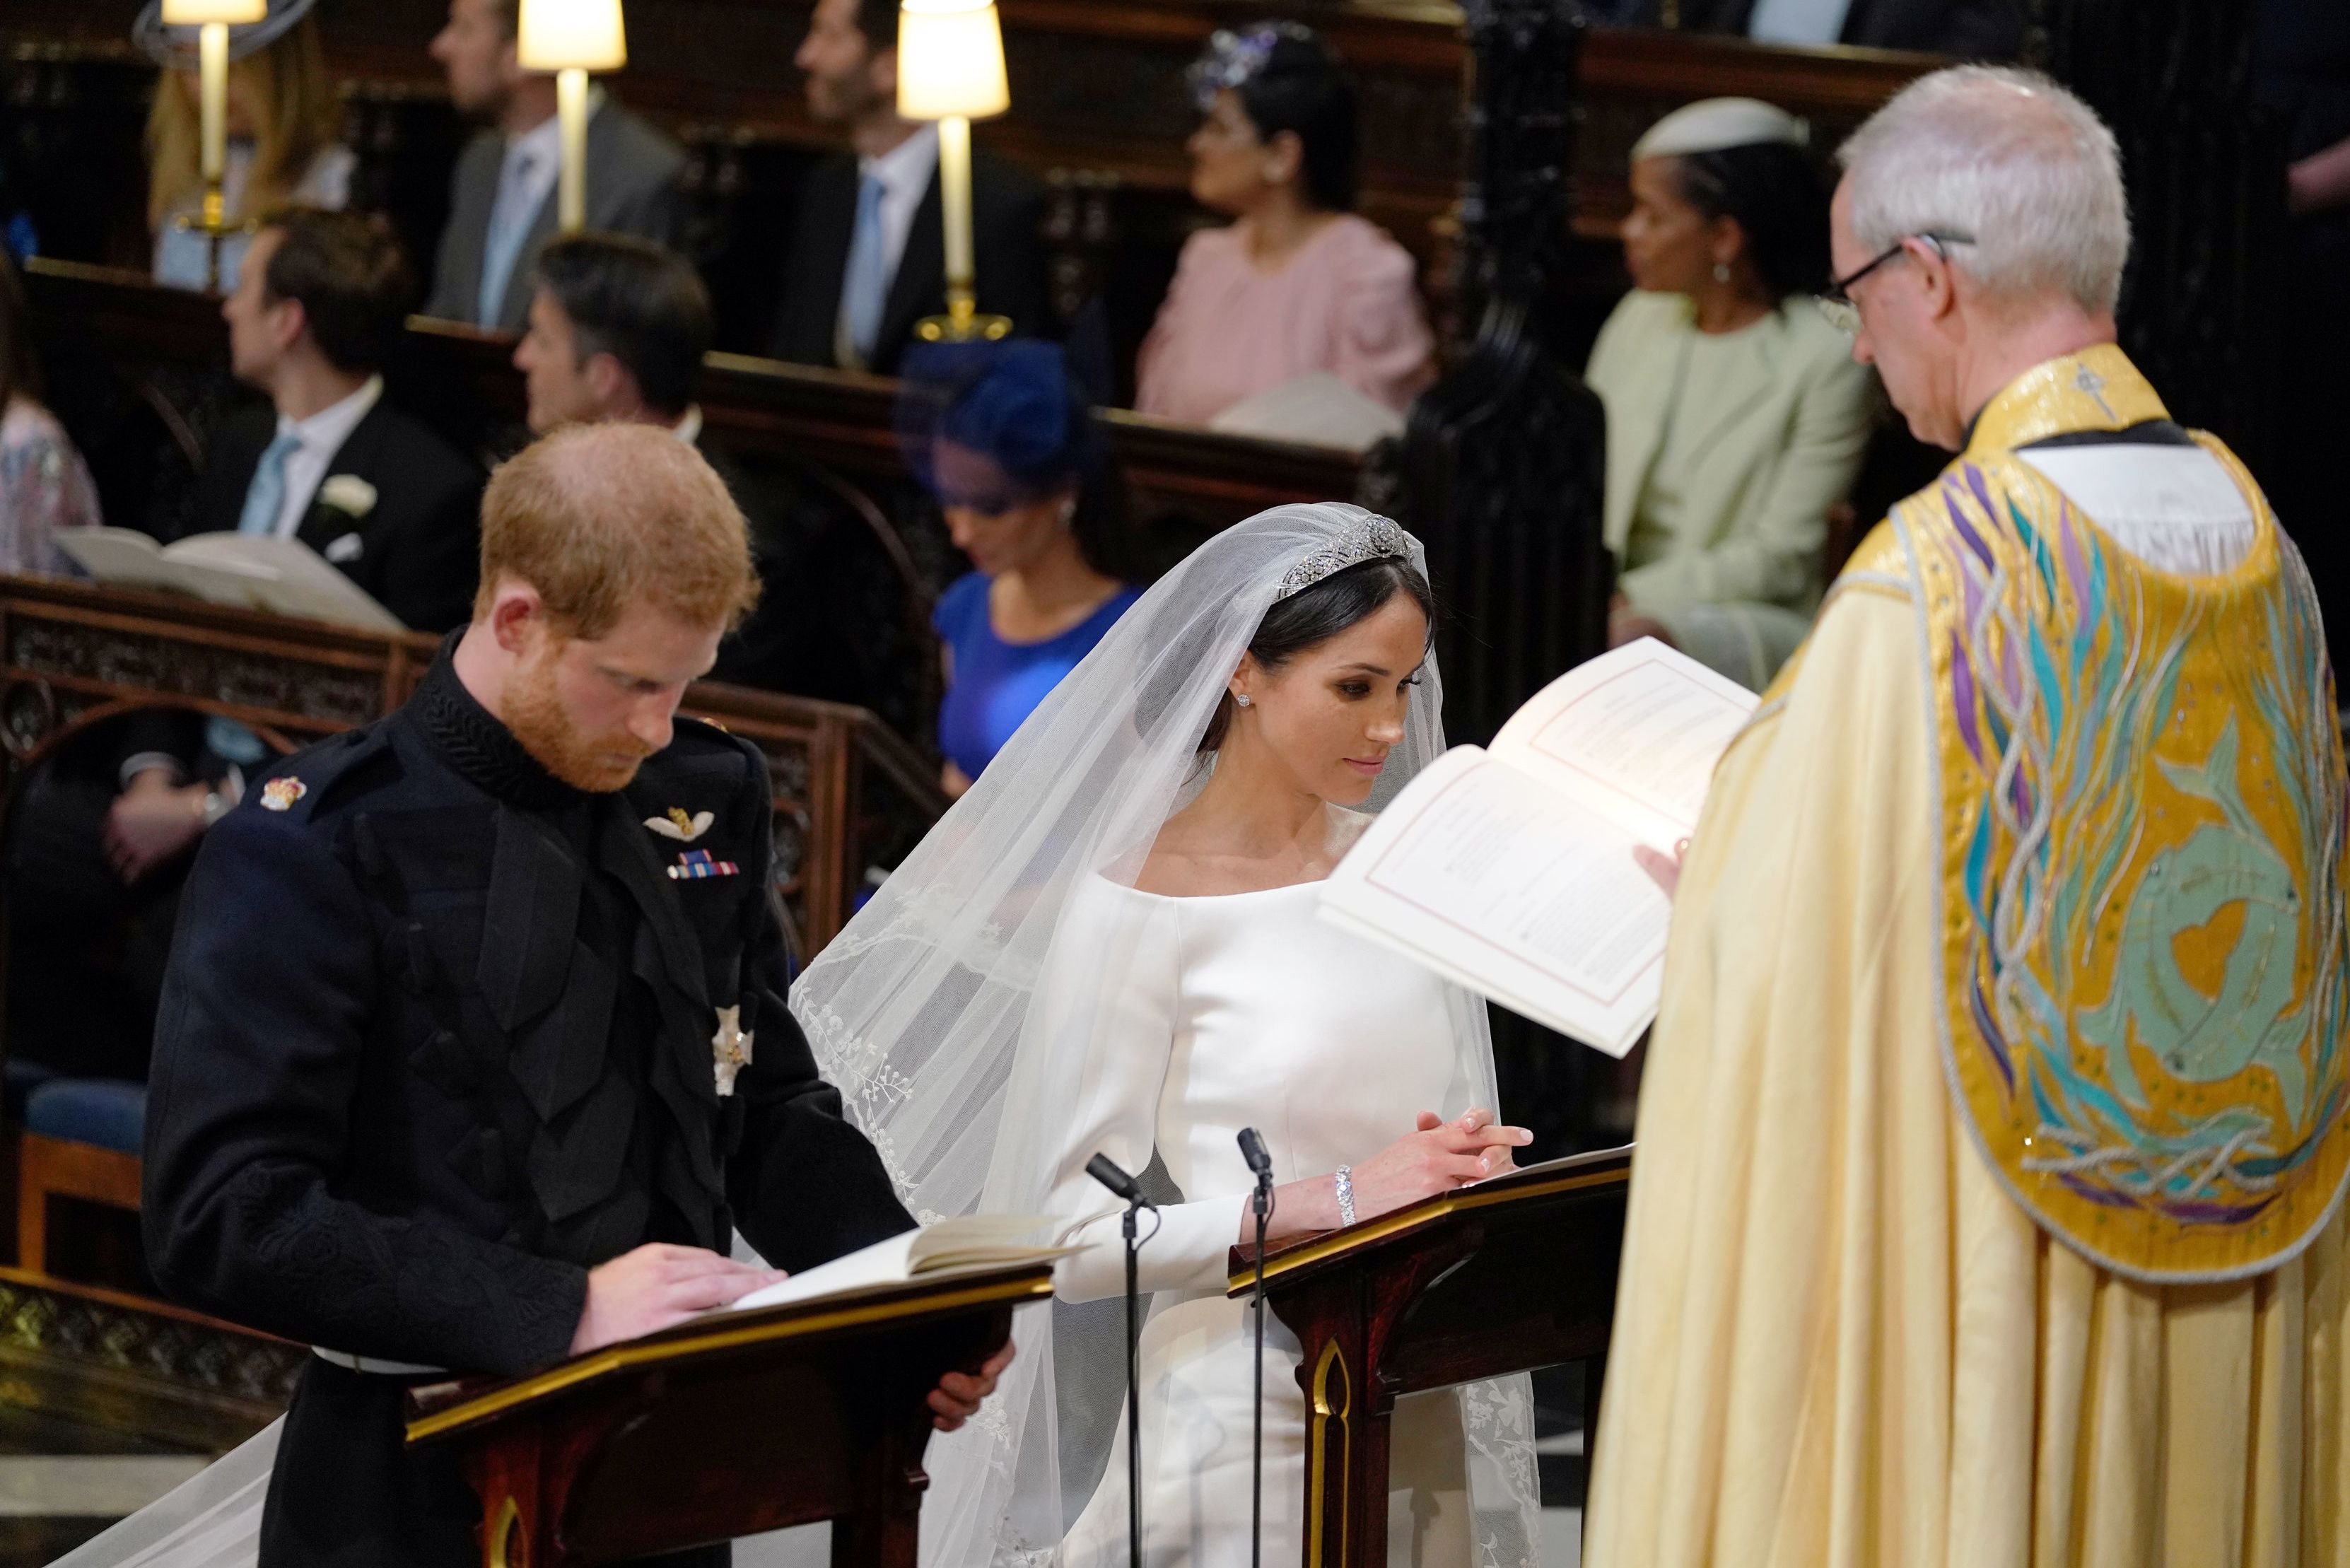 The wedding of Prince Harry and Meghan Markle, Ceremony, St George's Chapel, Windsor Castle, Berkshire, UK – 19 May 2018